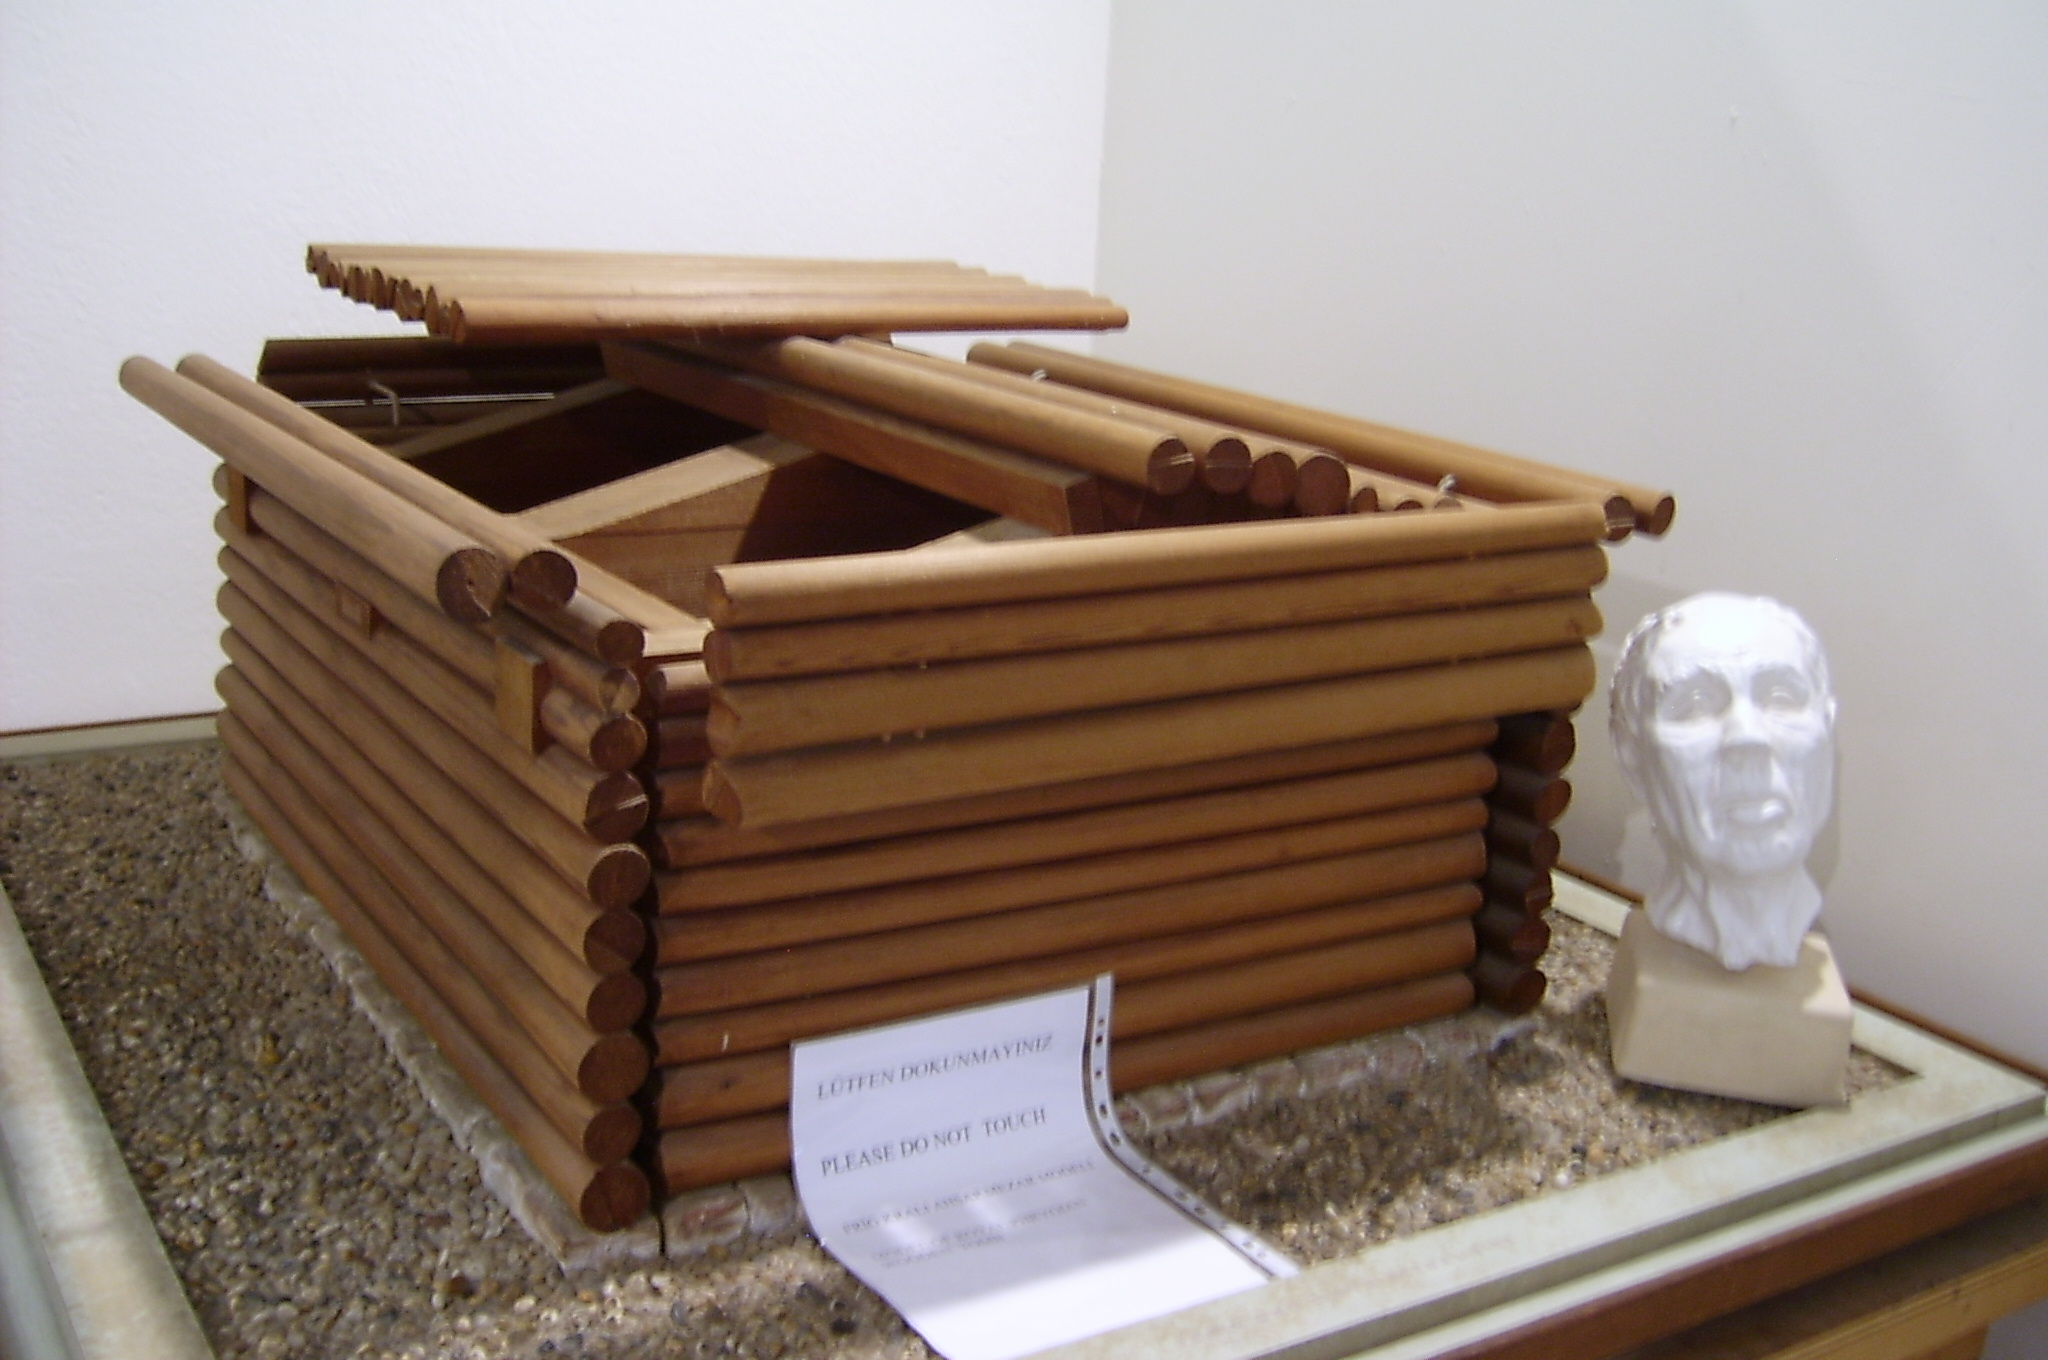 File:Model of Tumulus of Midas.JPG - Wikimedia Commons